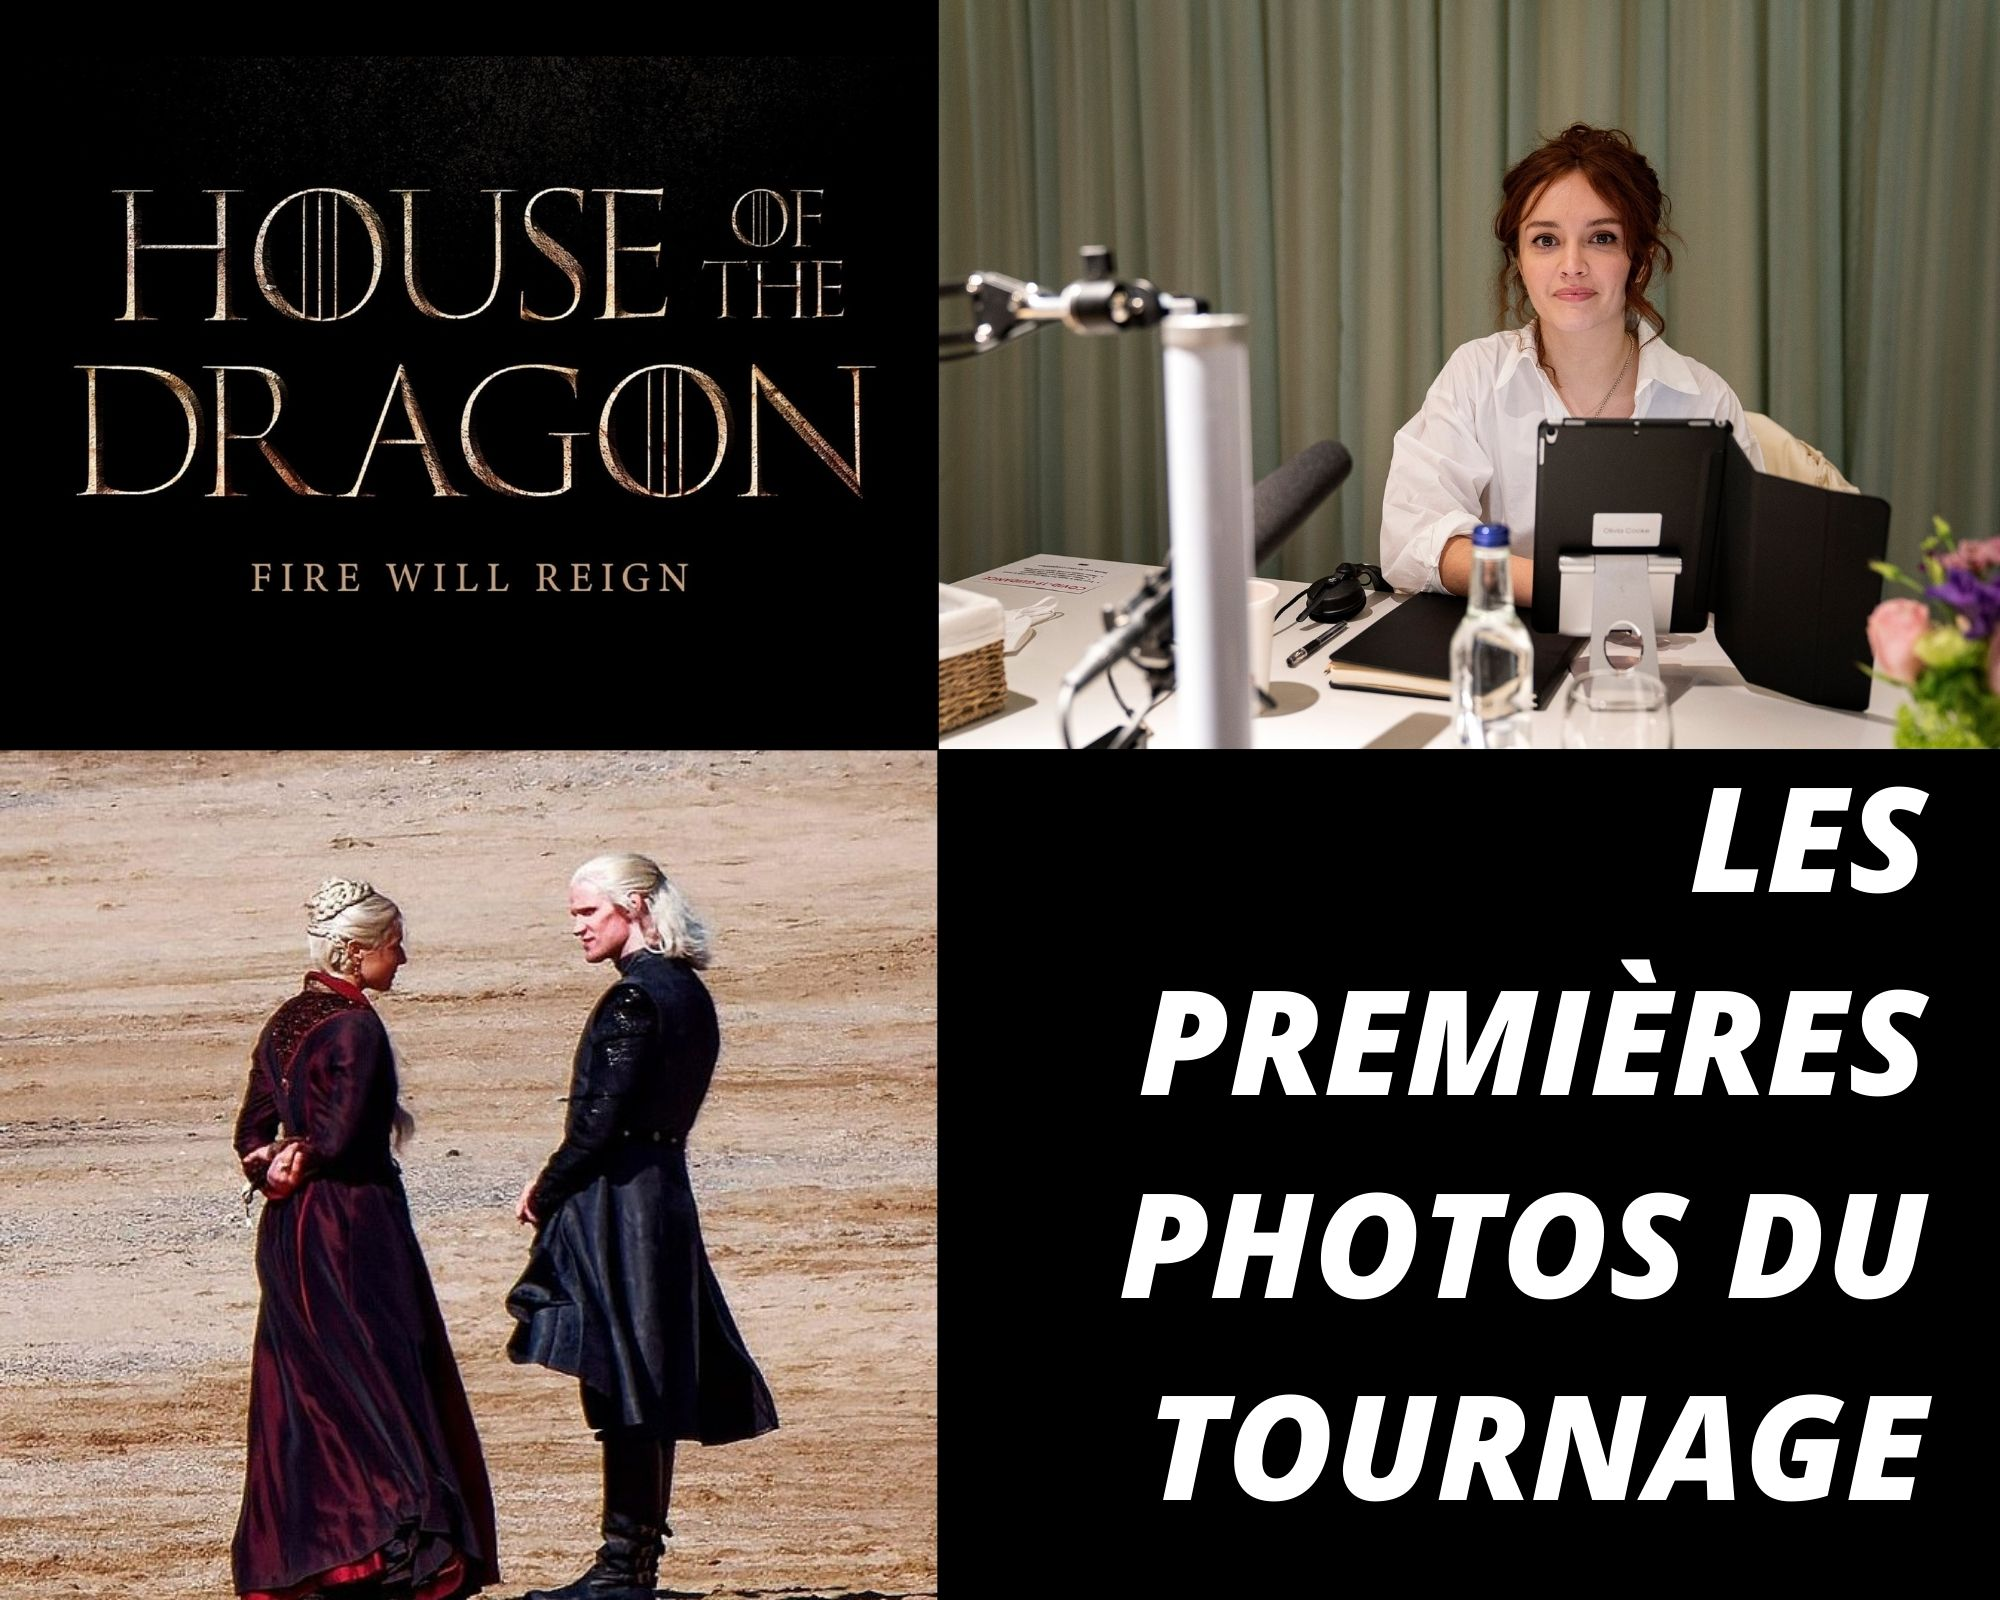 Game of thrones prequel - House of the dragon